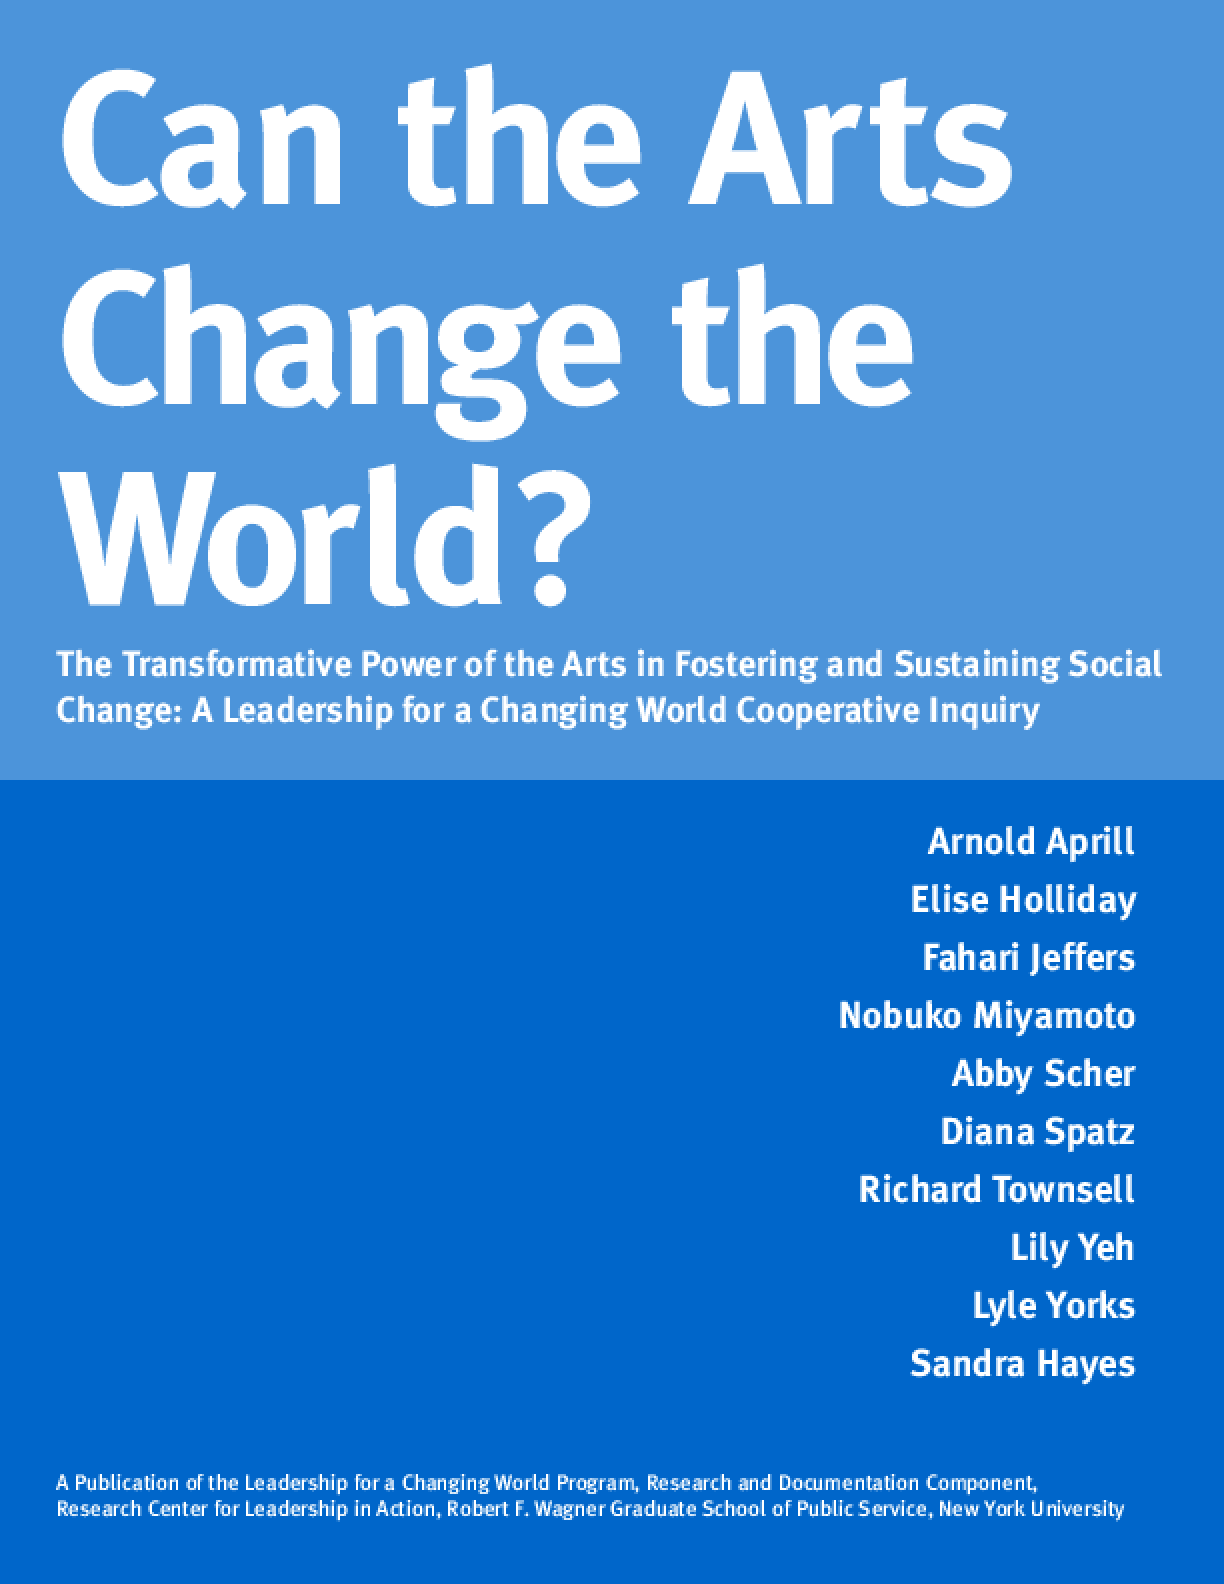 Can the Arts Change the World? The Transformative Power of the Arts in Fostering and Sustaining Social Change